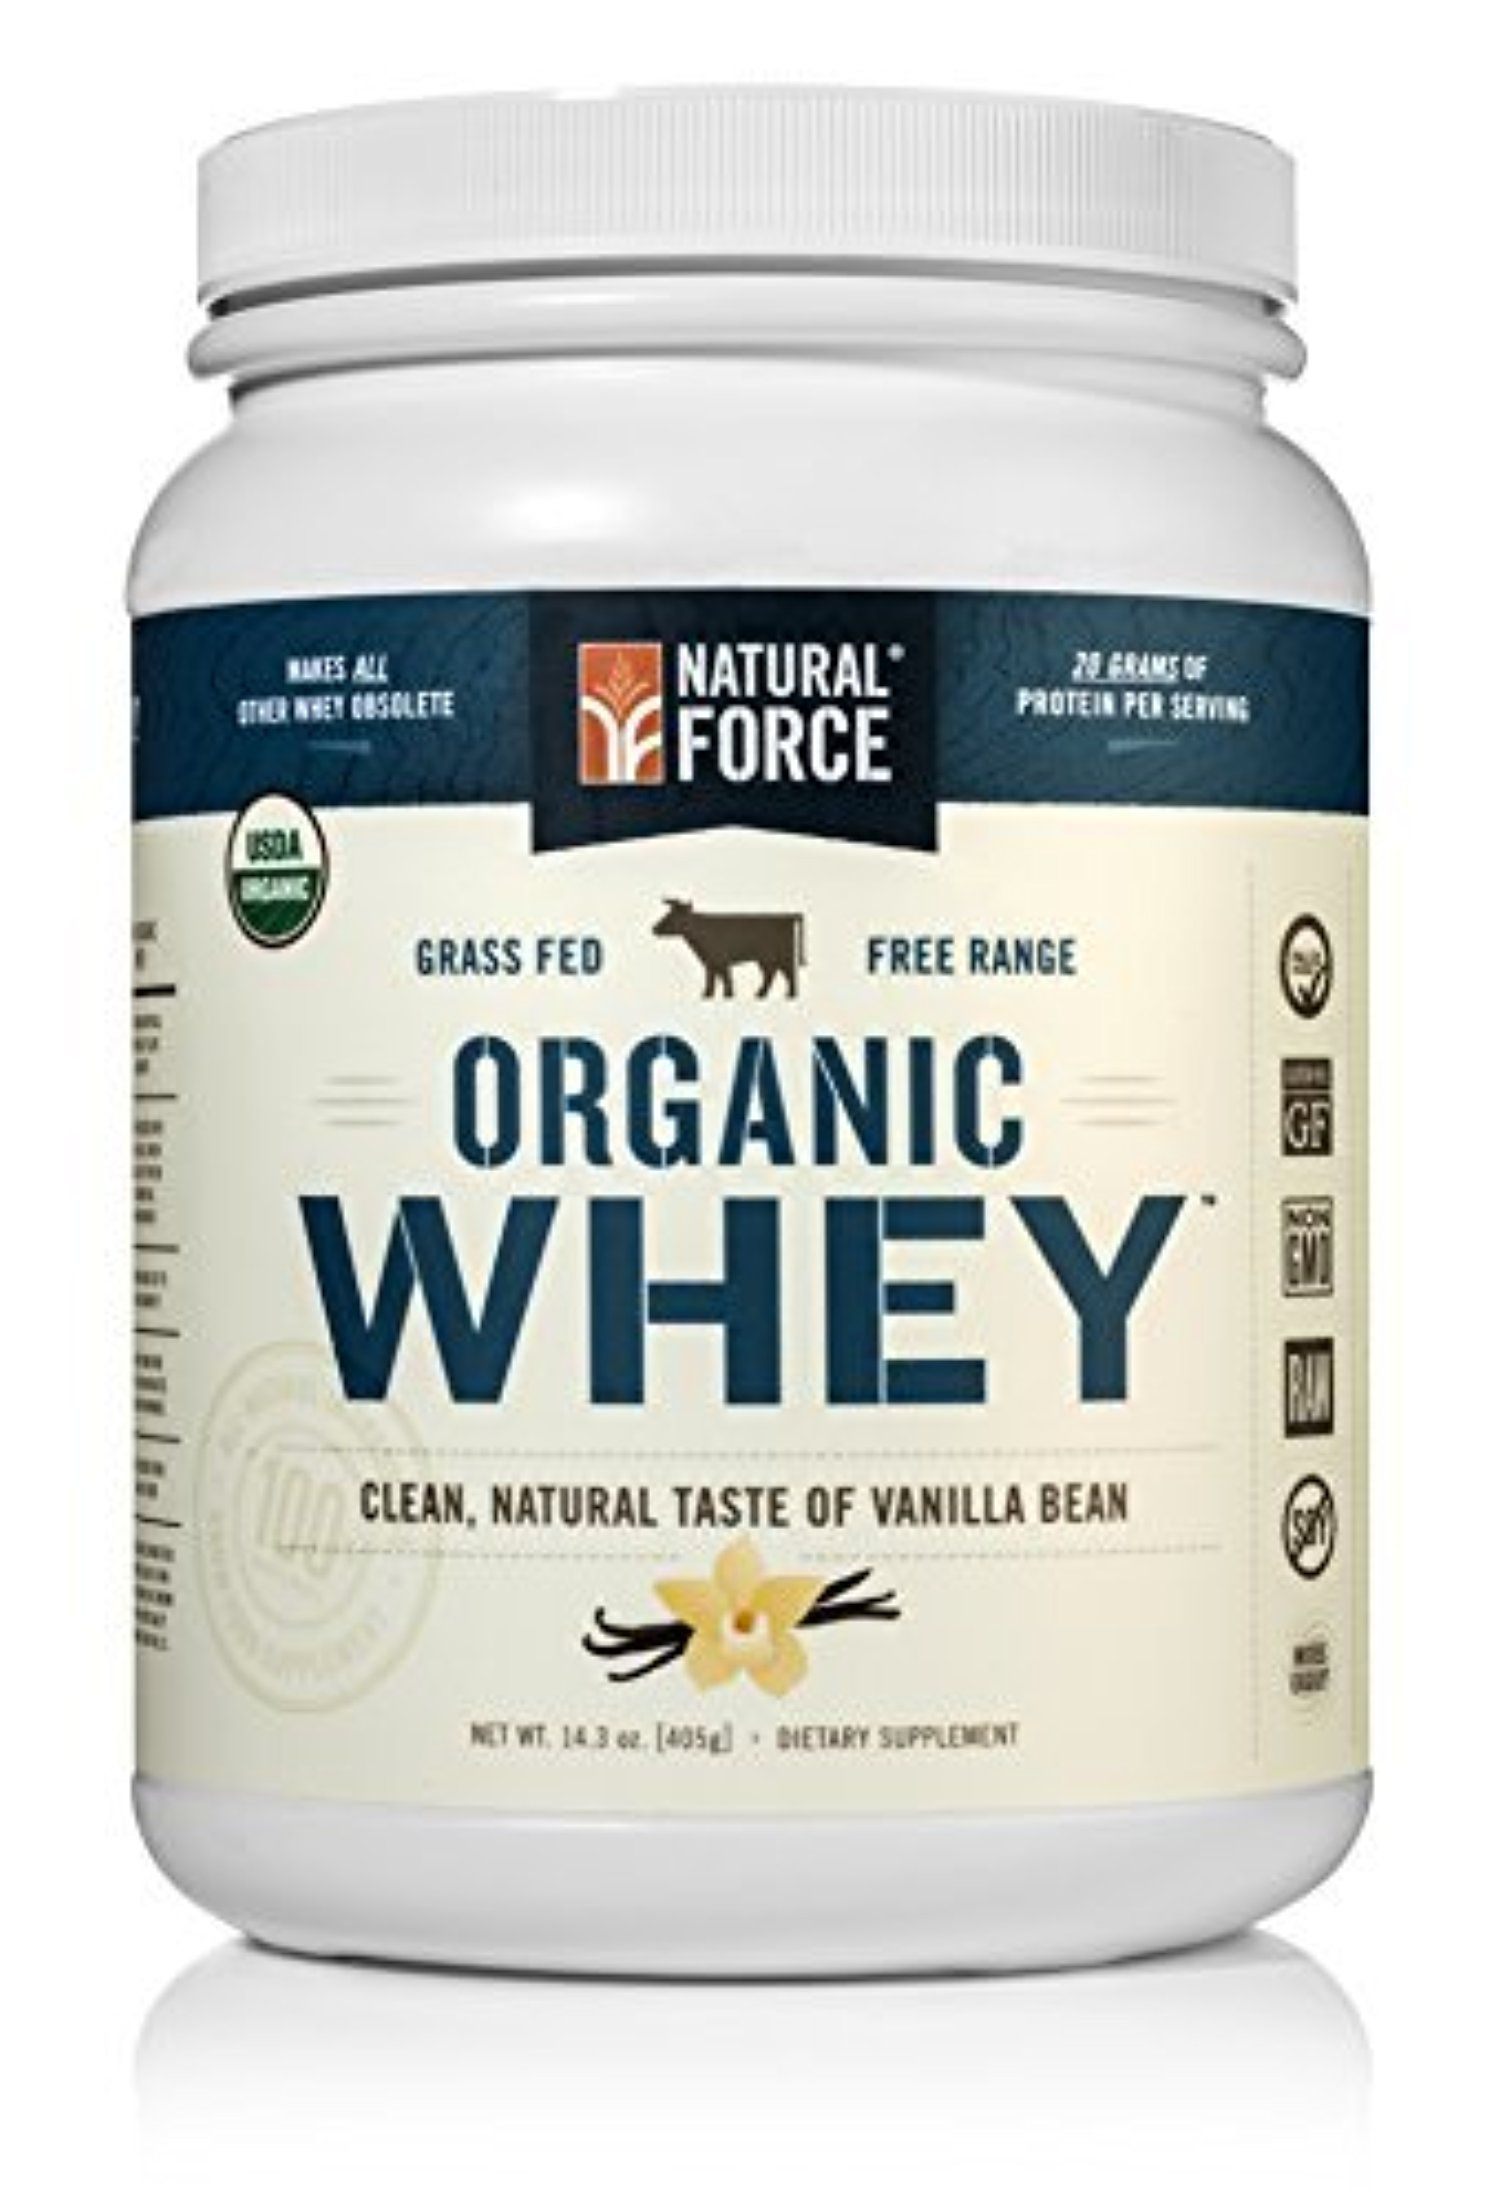 Natural organic whey protein powder